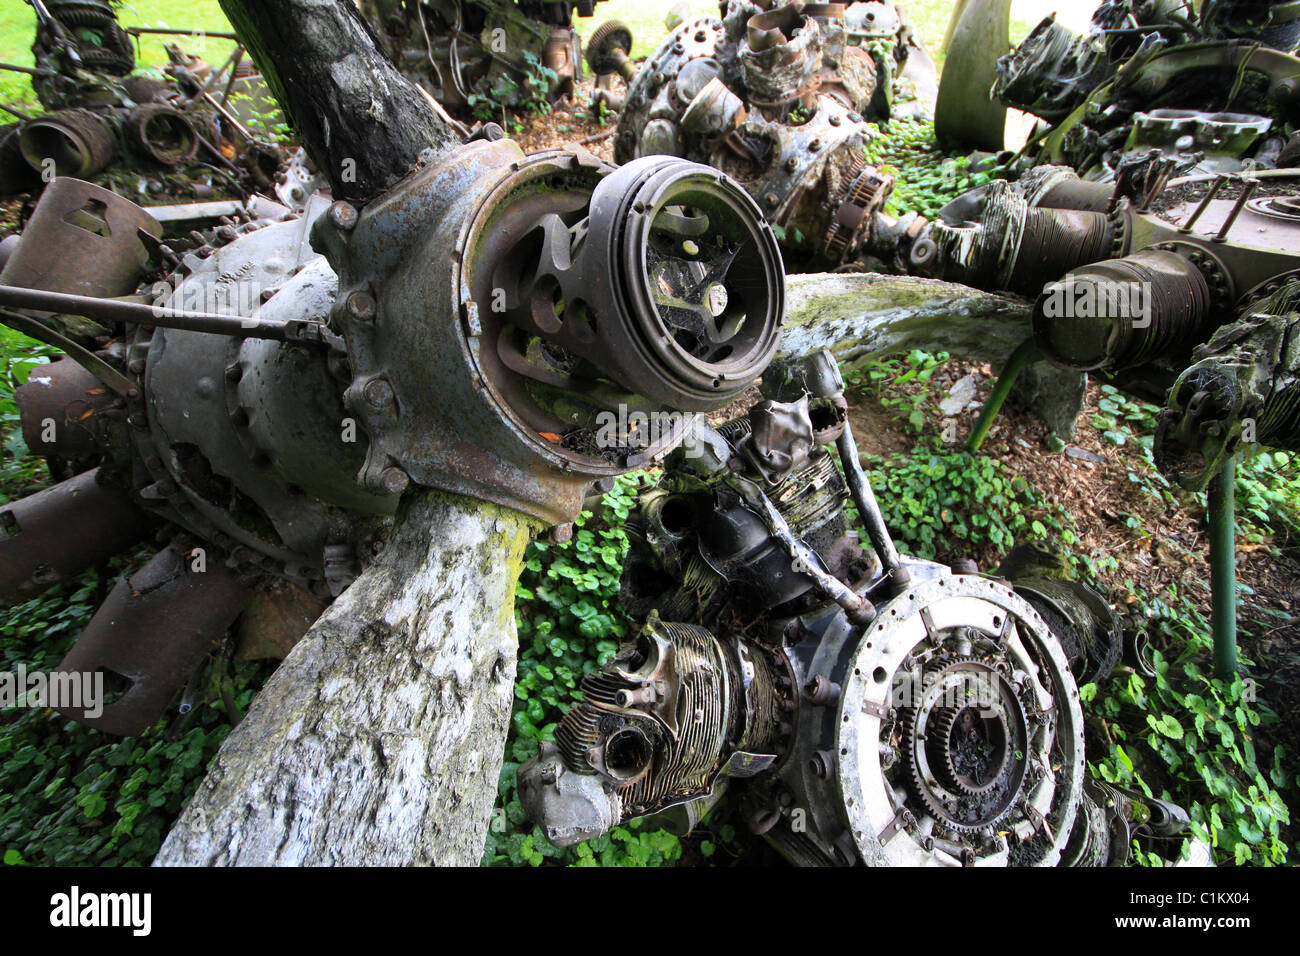 Old aero engines from crashed ww2 aircraft - Stock Image